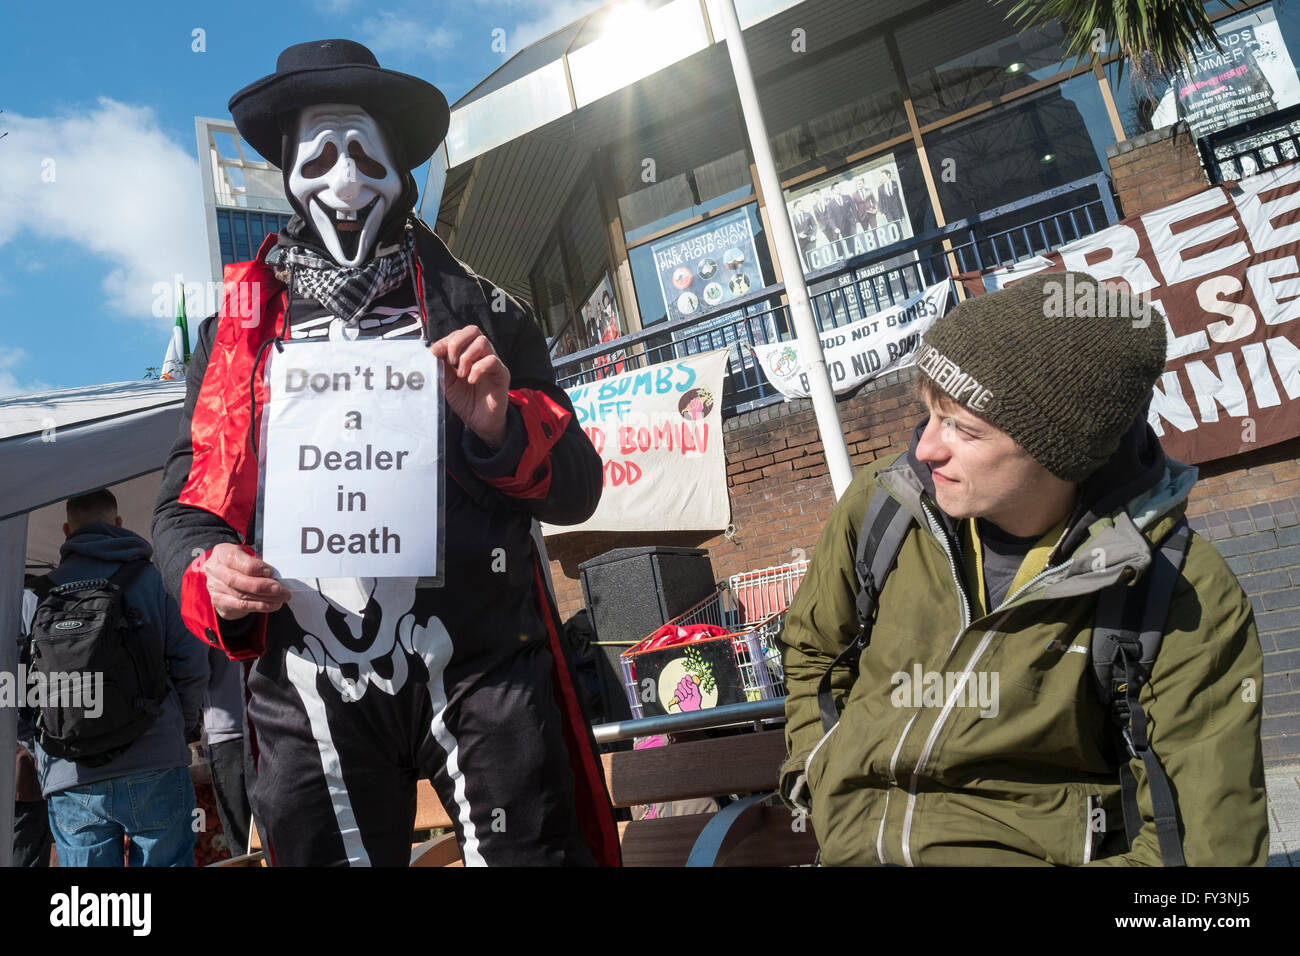 Rally against gun dealing fair in Cardiff, Wales - Stock Image